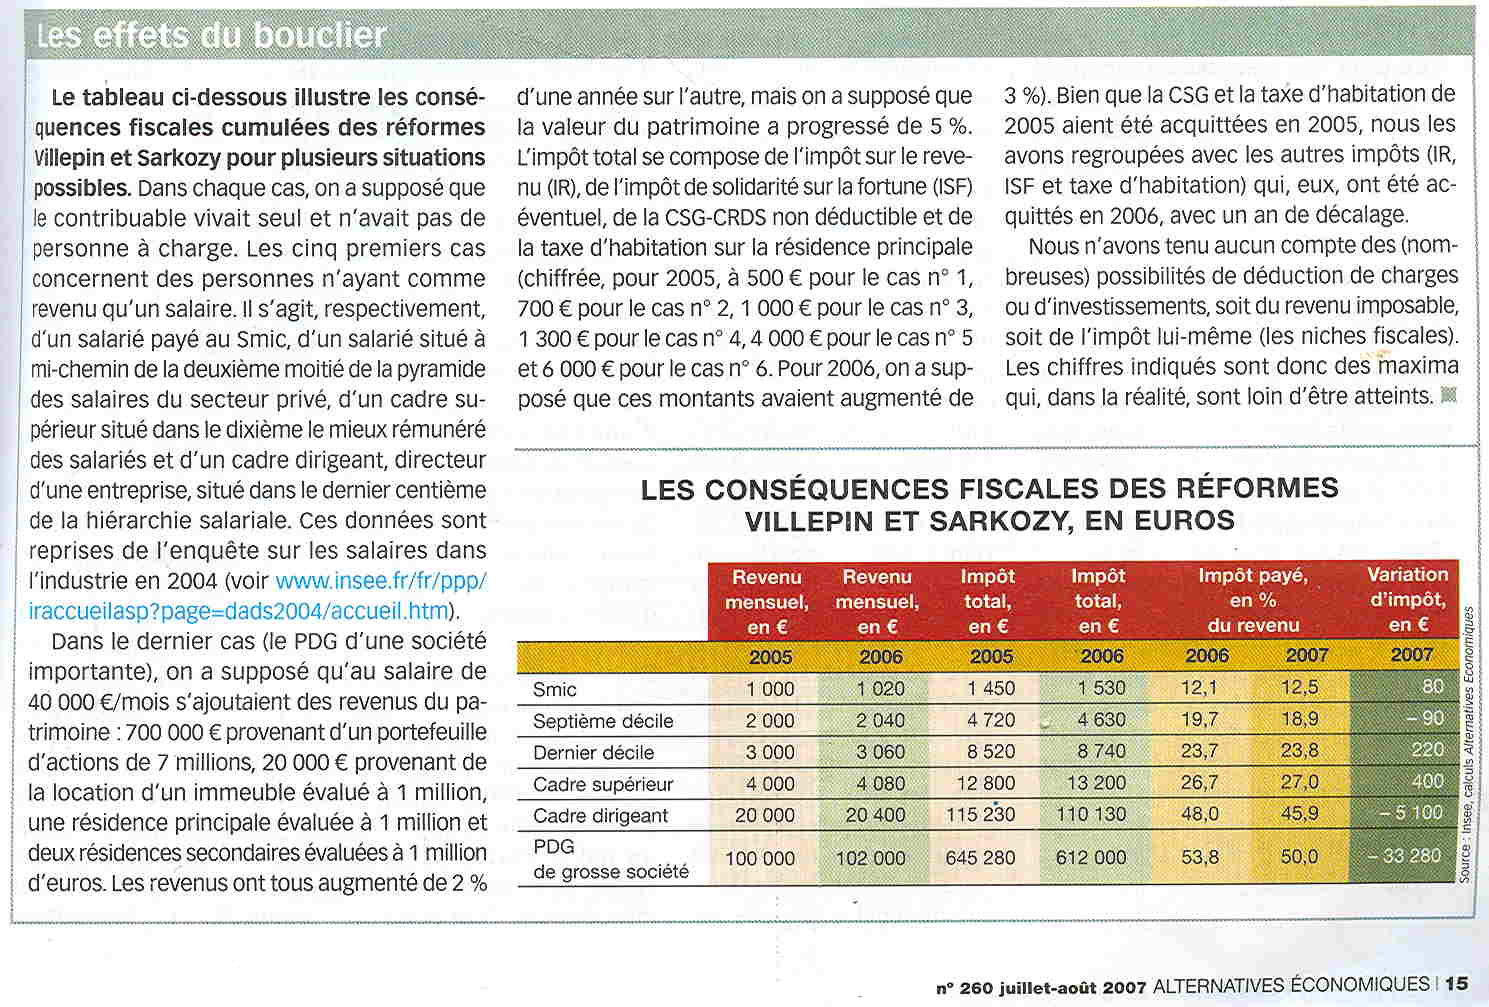 Article d'Alternatives Economiques, août 2007